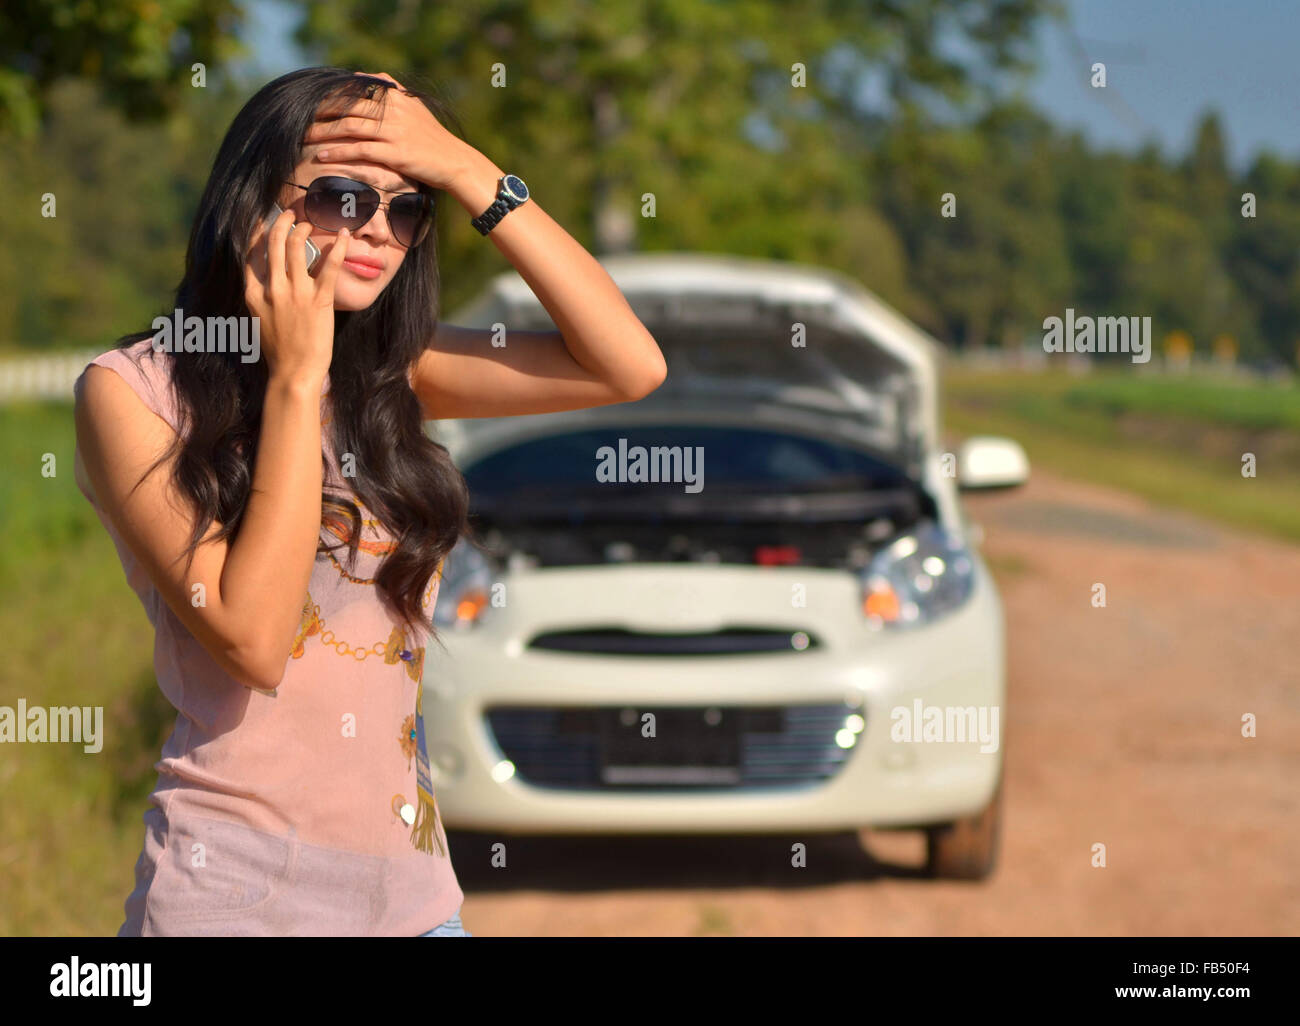 Car Broke Down >> A Woman Calls For Assistance After Her Car Broke Down Stock Photo